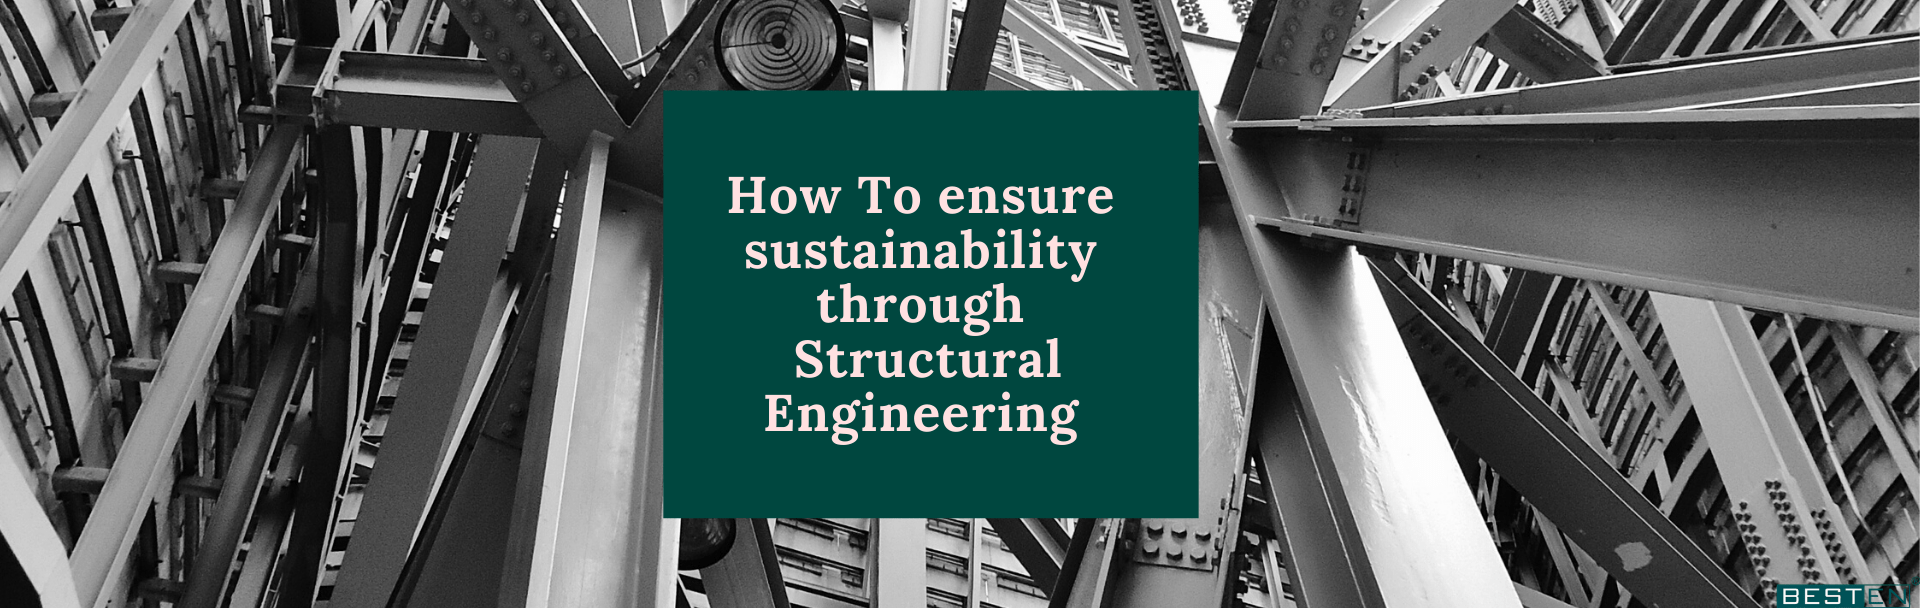 Industrial Structural engineering companies